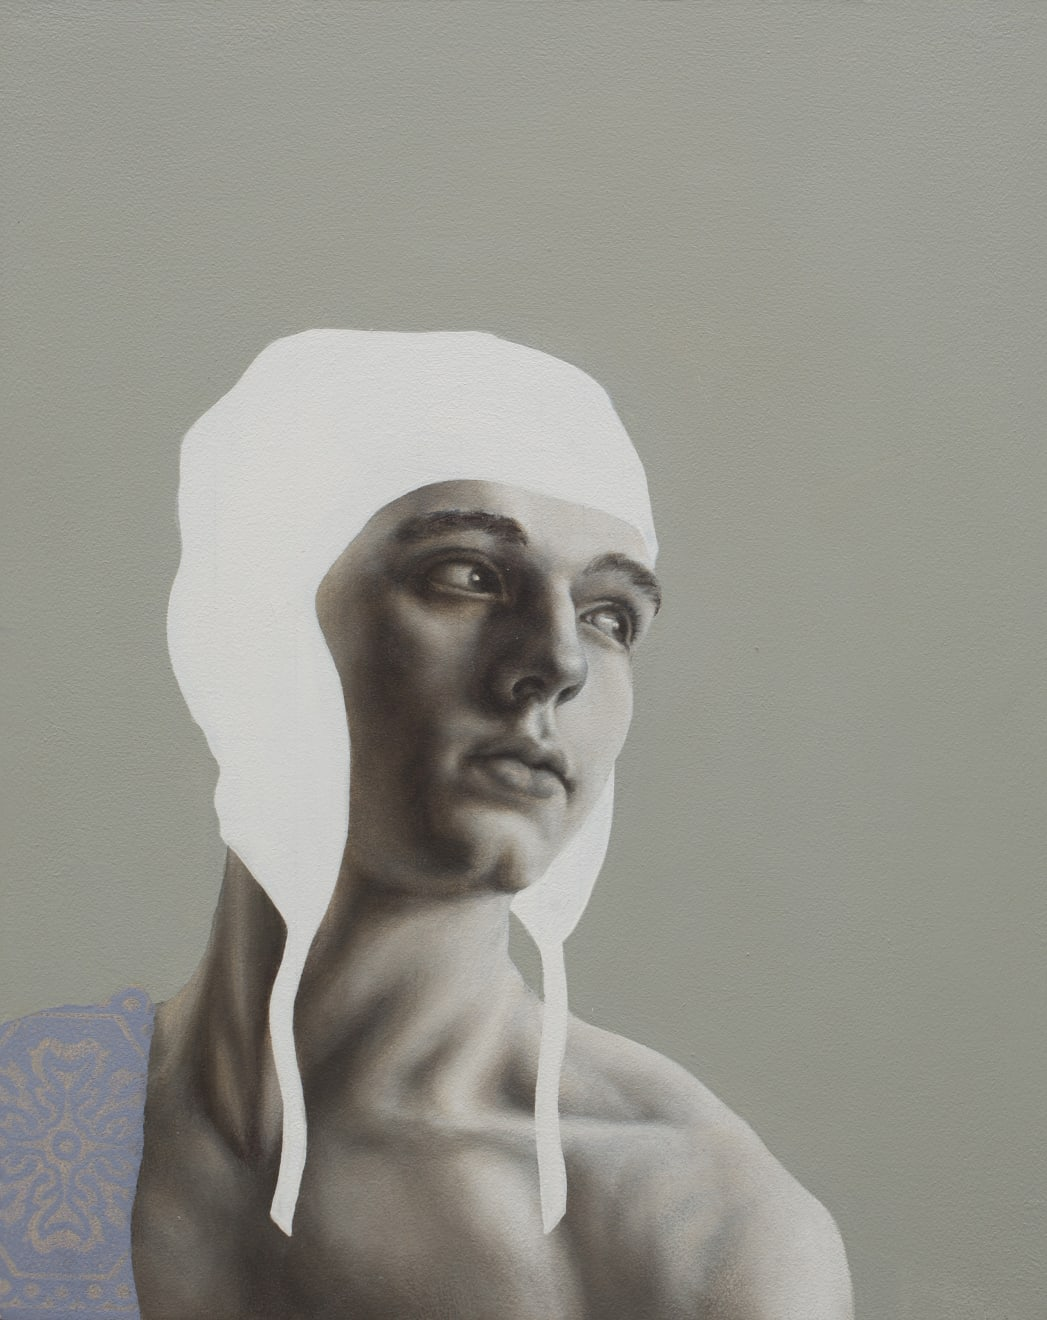 Pippa Young, Self-reflection, 2016